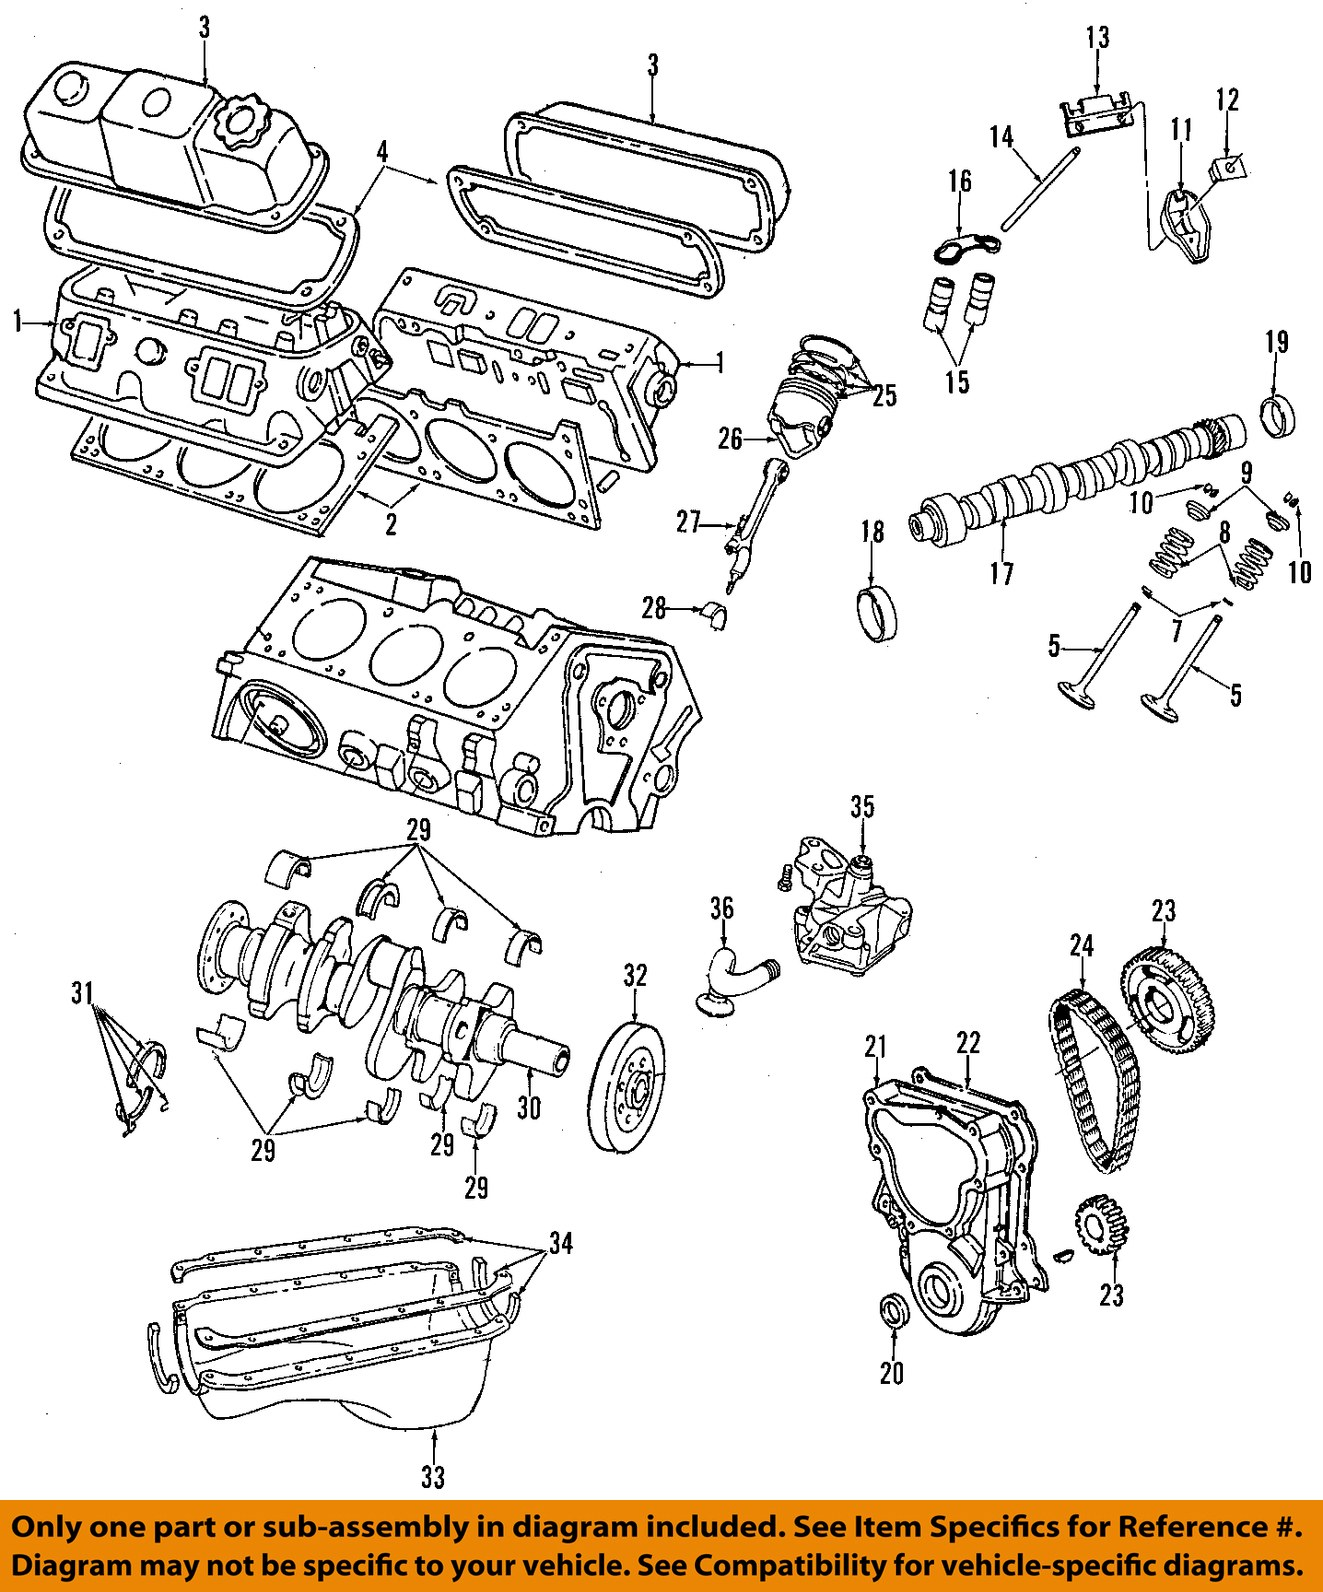 Chrysler 440 Wiring Diagram Free For You 2000 Town And Country Mopar F Body Ignition